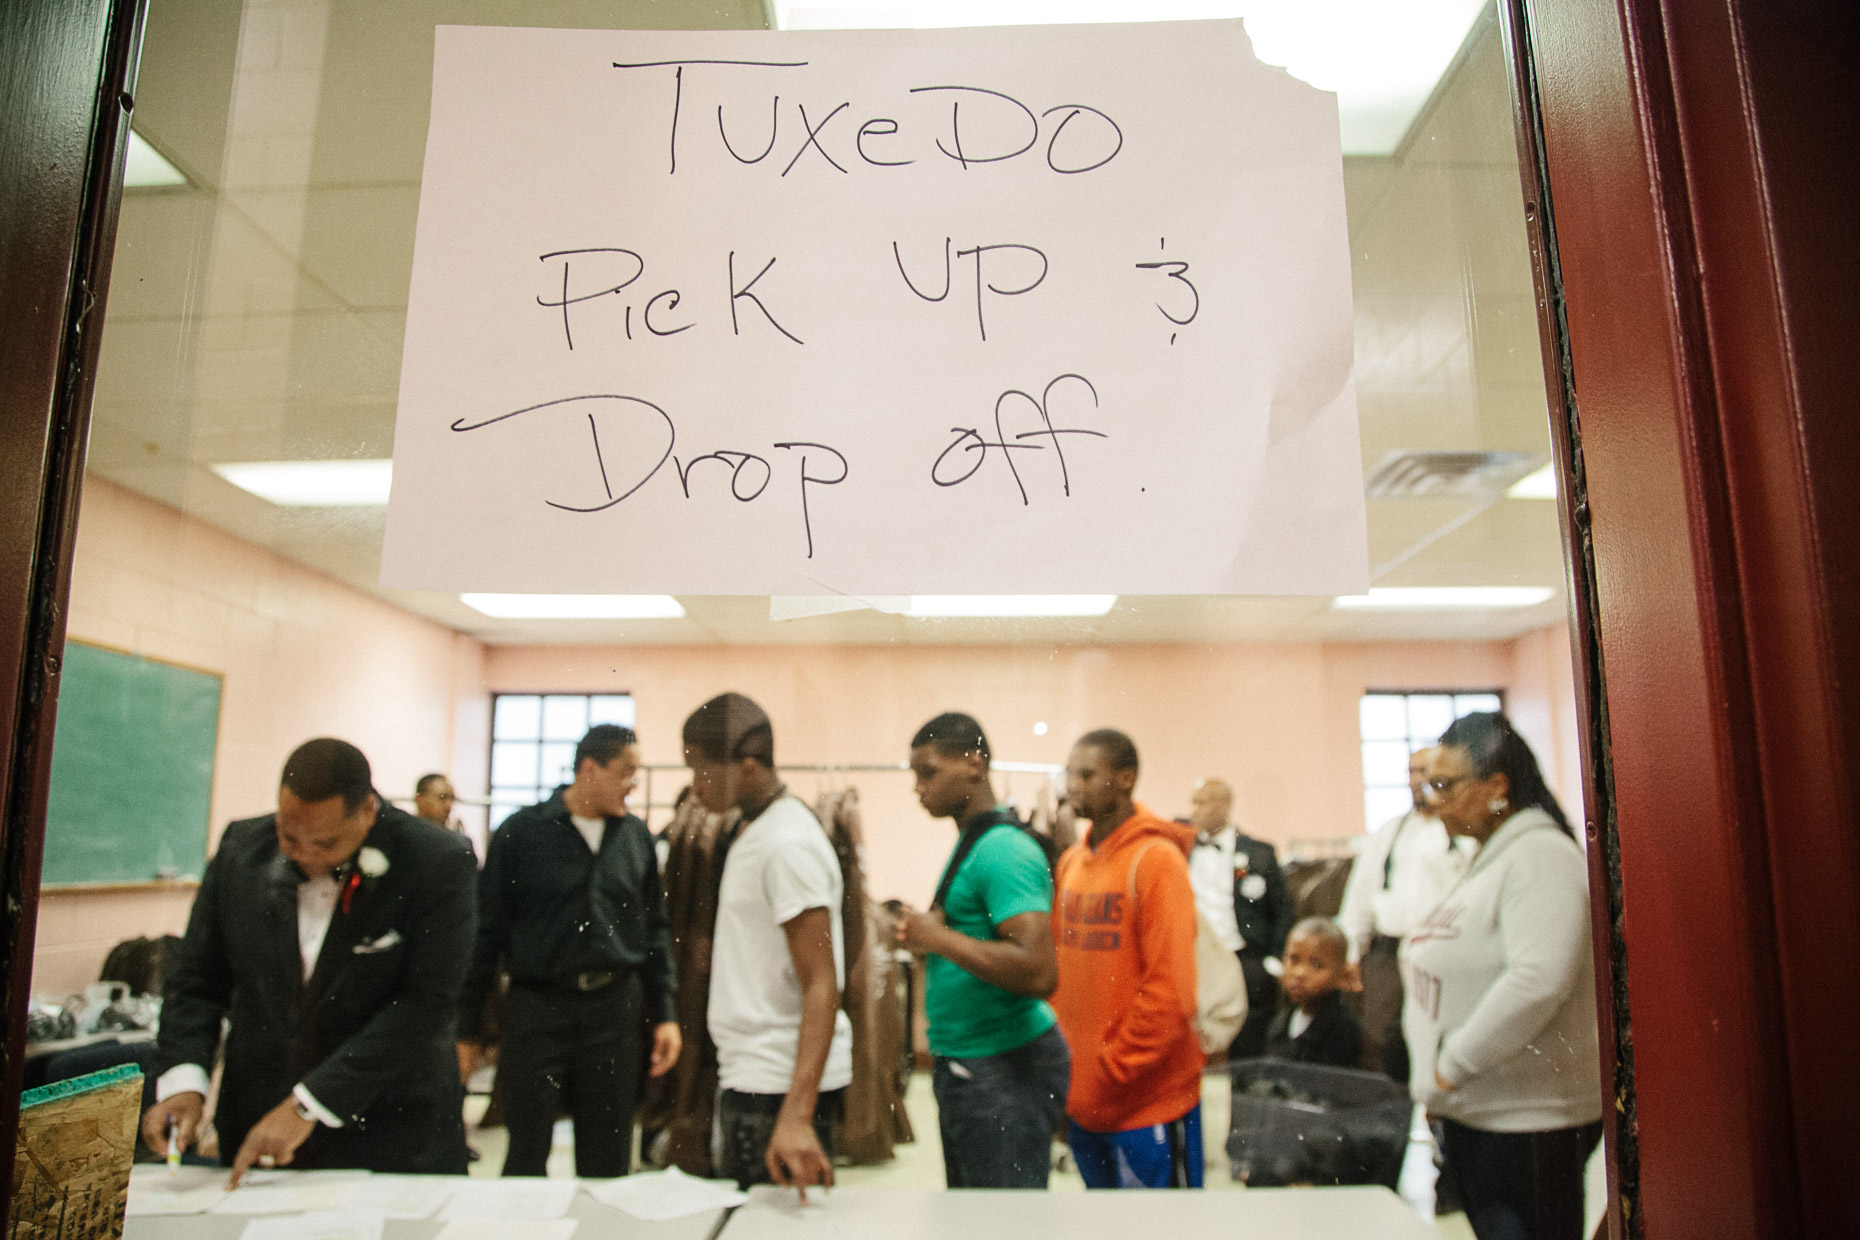 A group of young men line up to pick up their tuxedos in a room at the Northcott Neighborhood House for the 500 Black Tuxedos Event, organized by Andre Lee Ellis, on Saturday December 12th, 2015 in Milwaukee, Wisconsin.